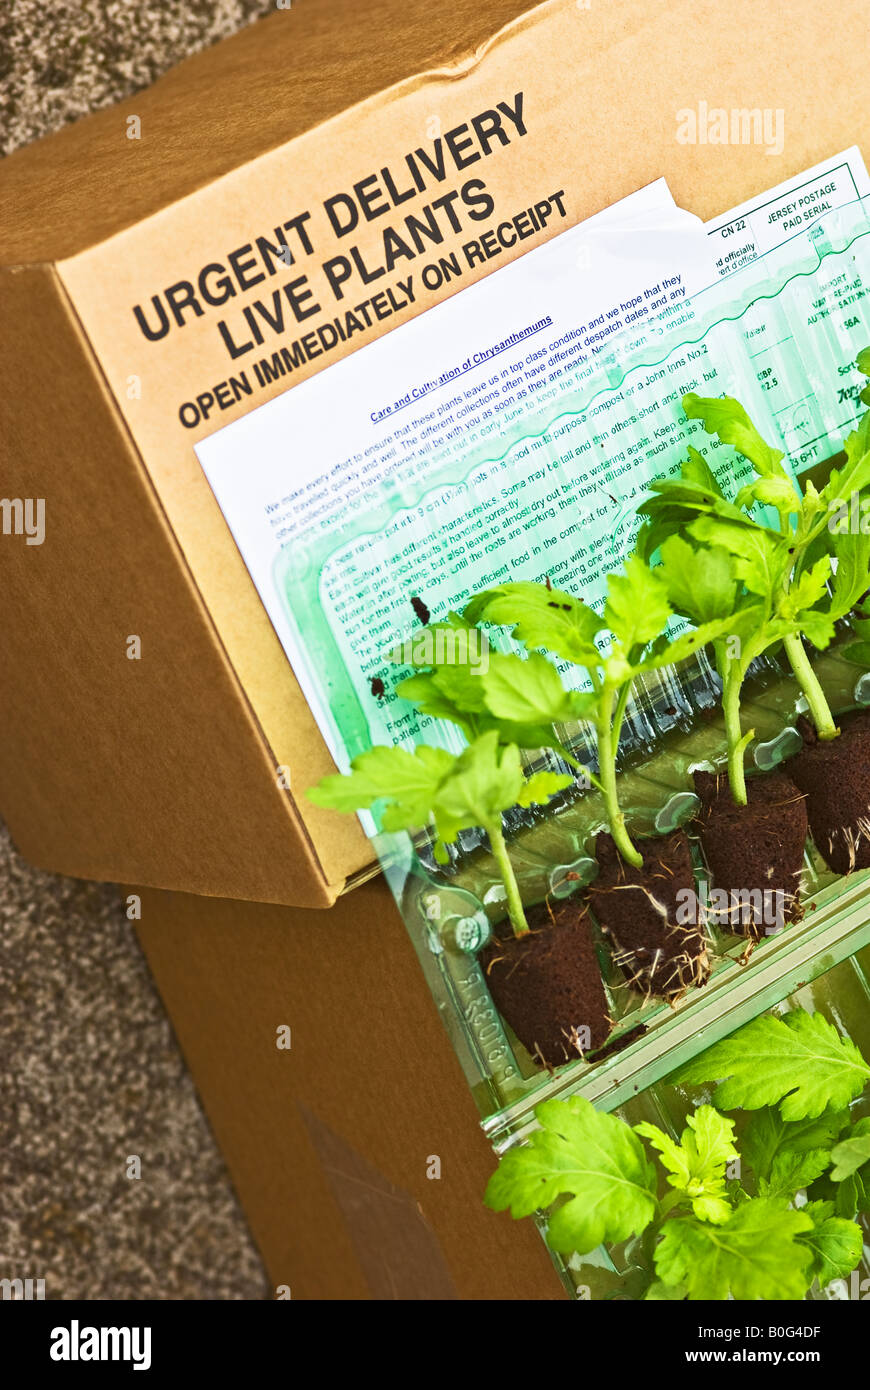 Live plants delivered by postal mail order opened prior to planting - Stock Image